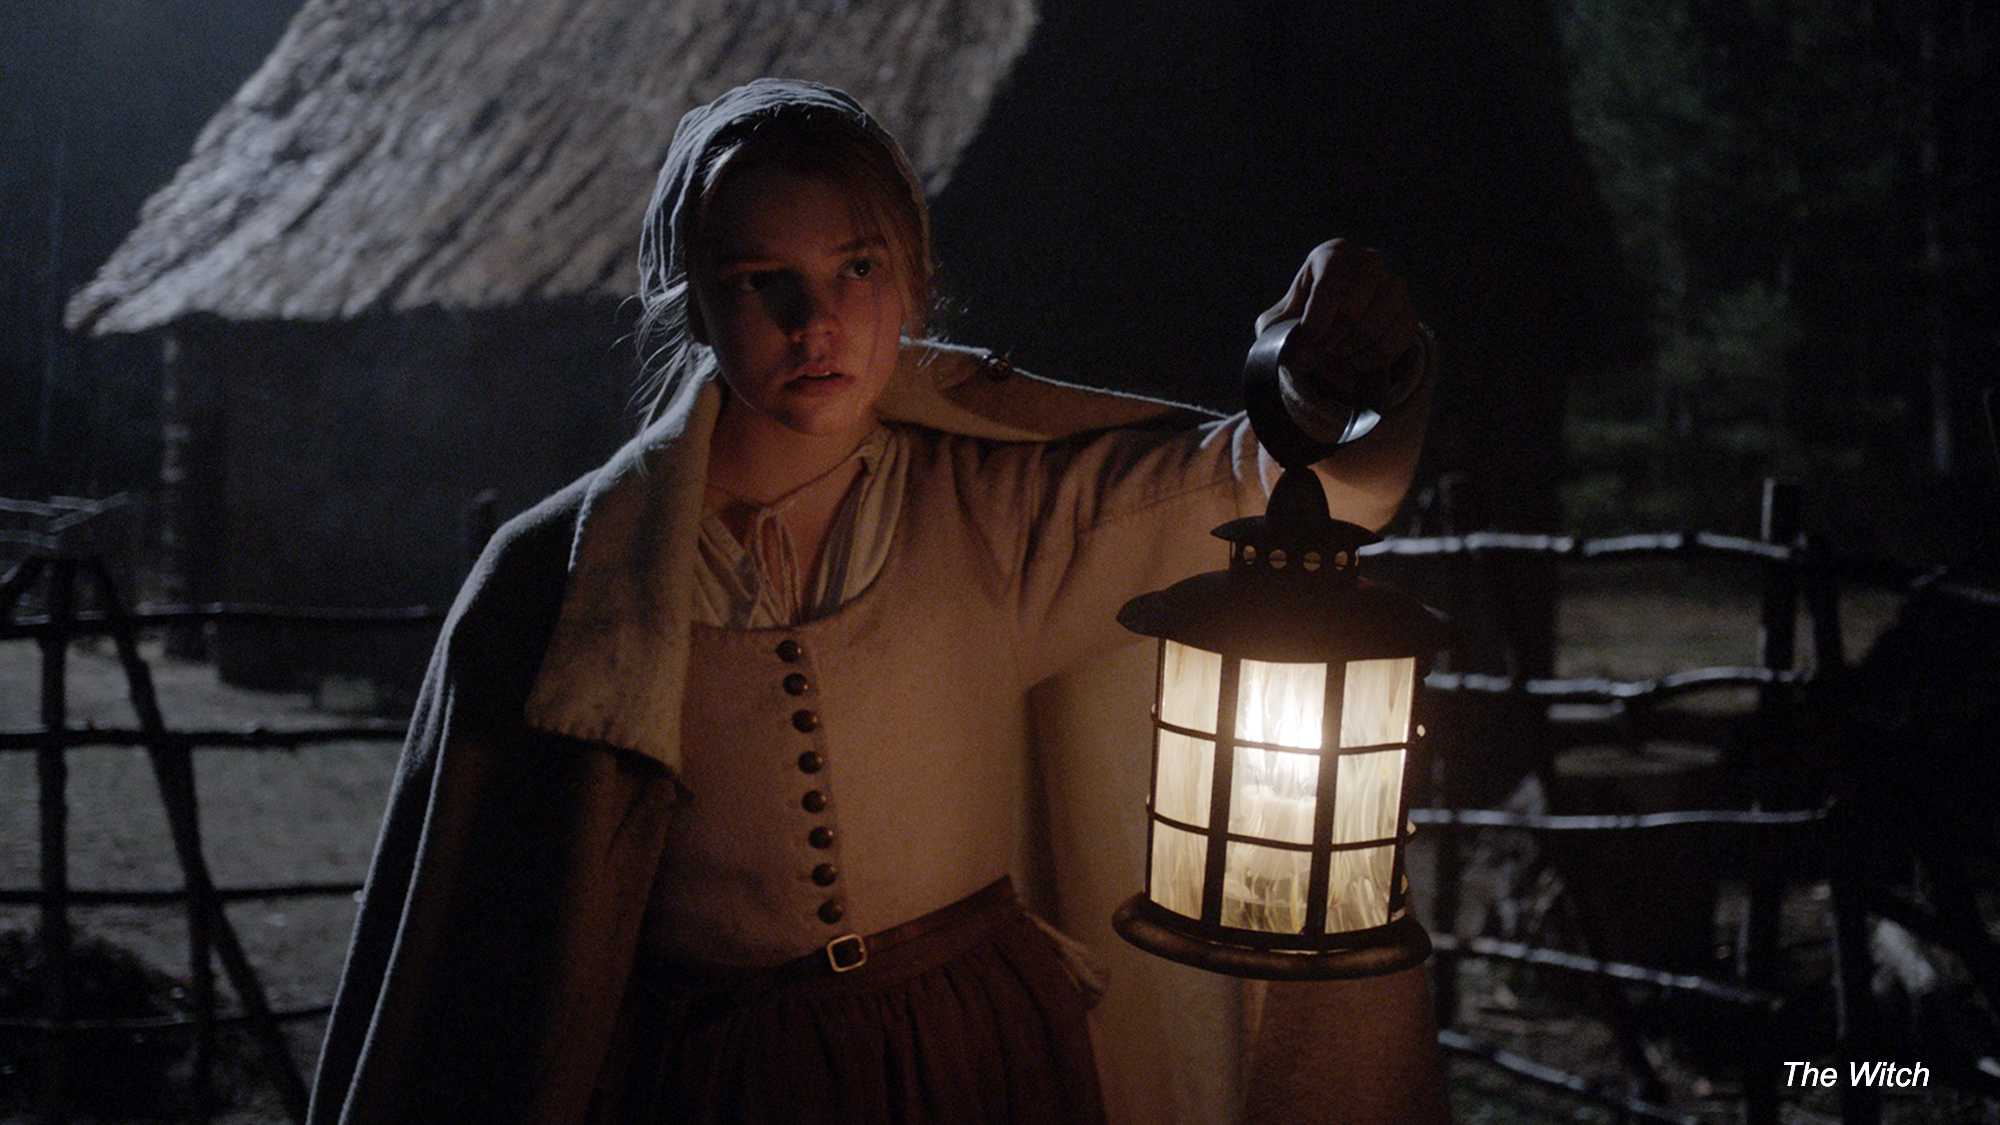 The Witch (image 3)